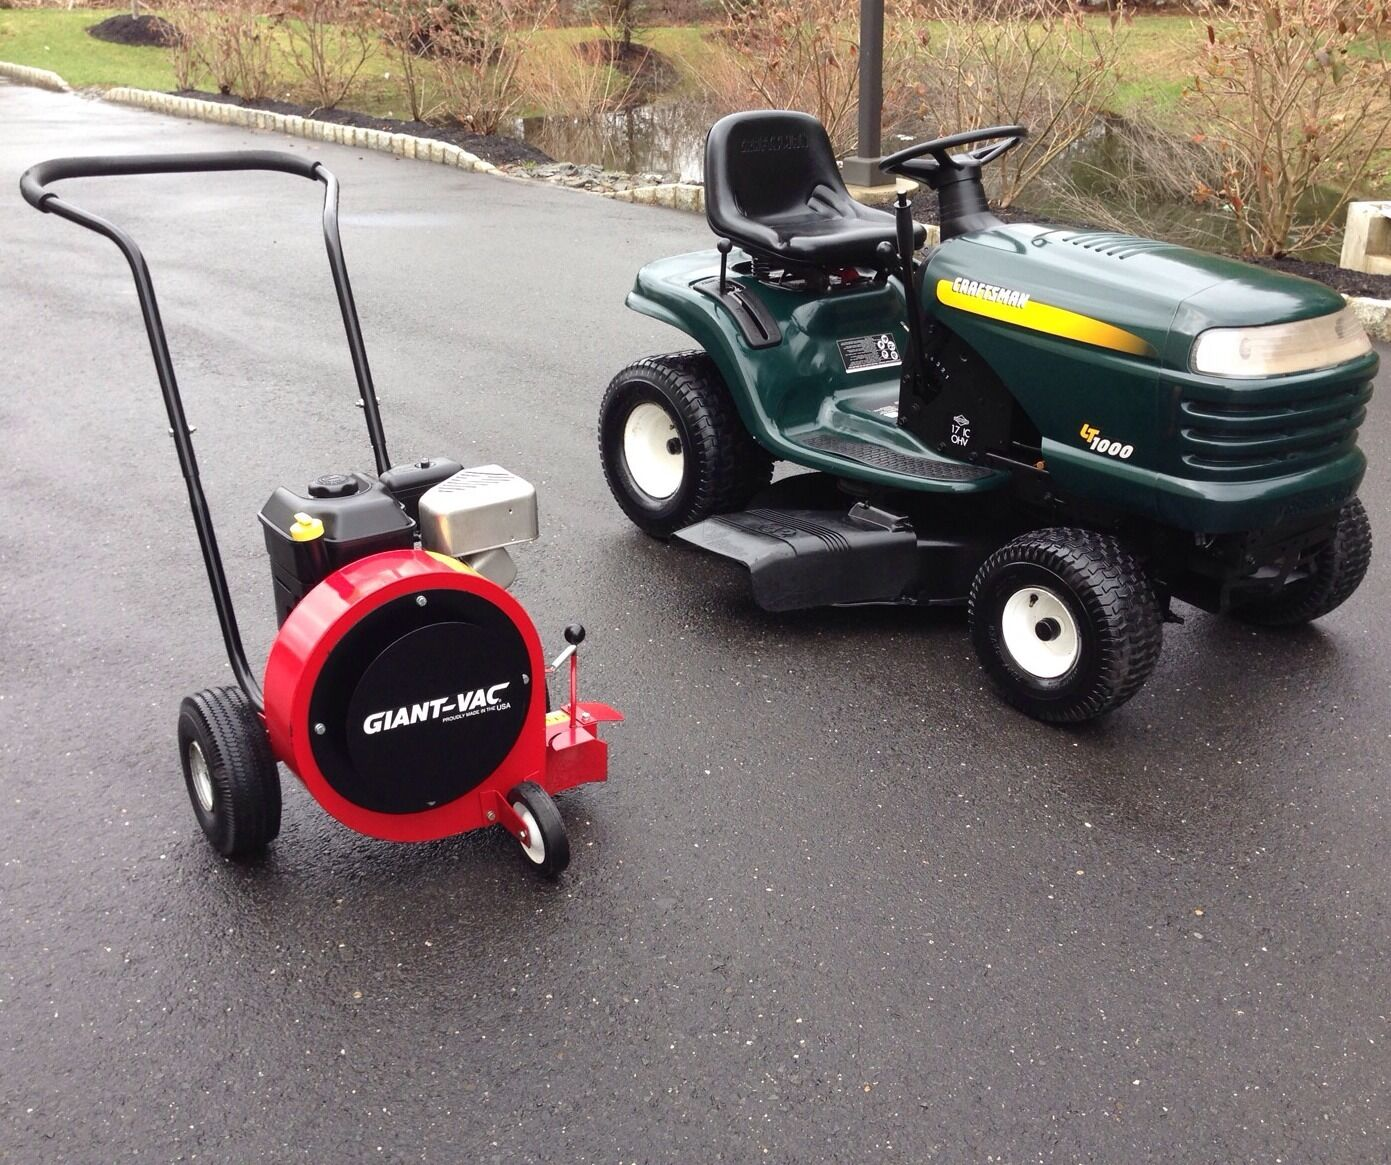 Craftsman Lt1000 For Sale 4 Listings Tractorhouse Com >> Craftsman Lt1000 Riding Mower Body Bar